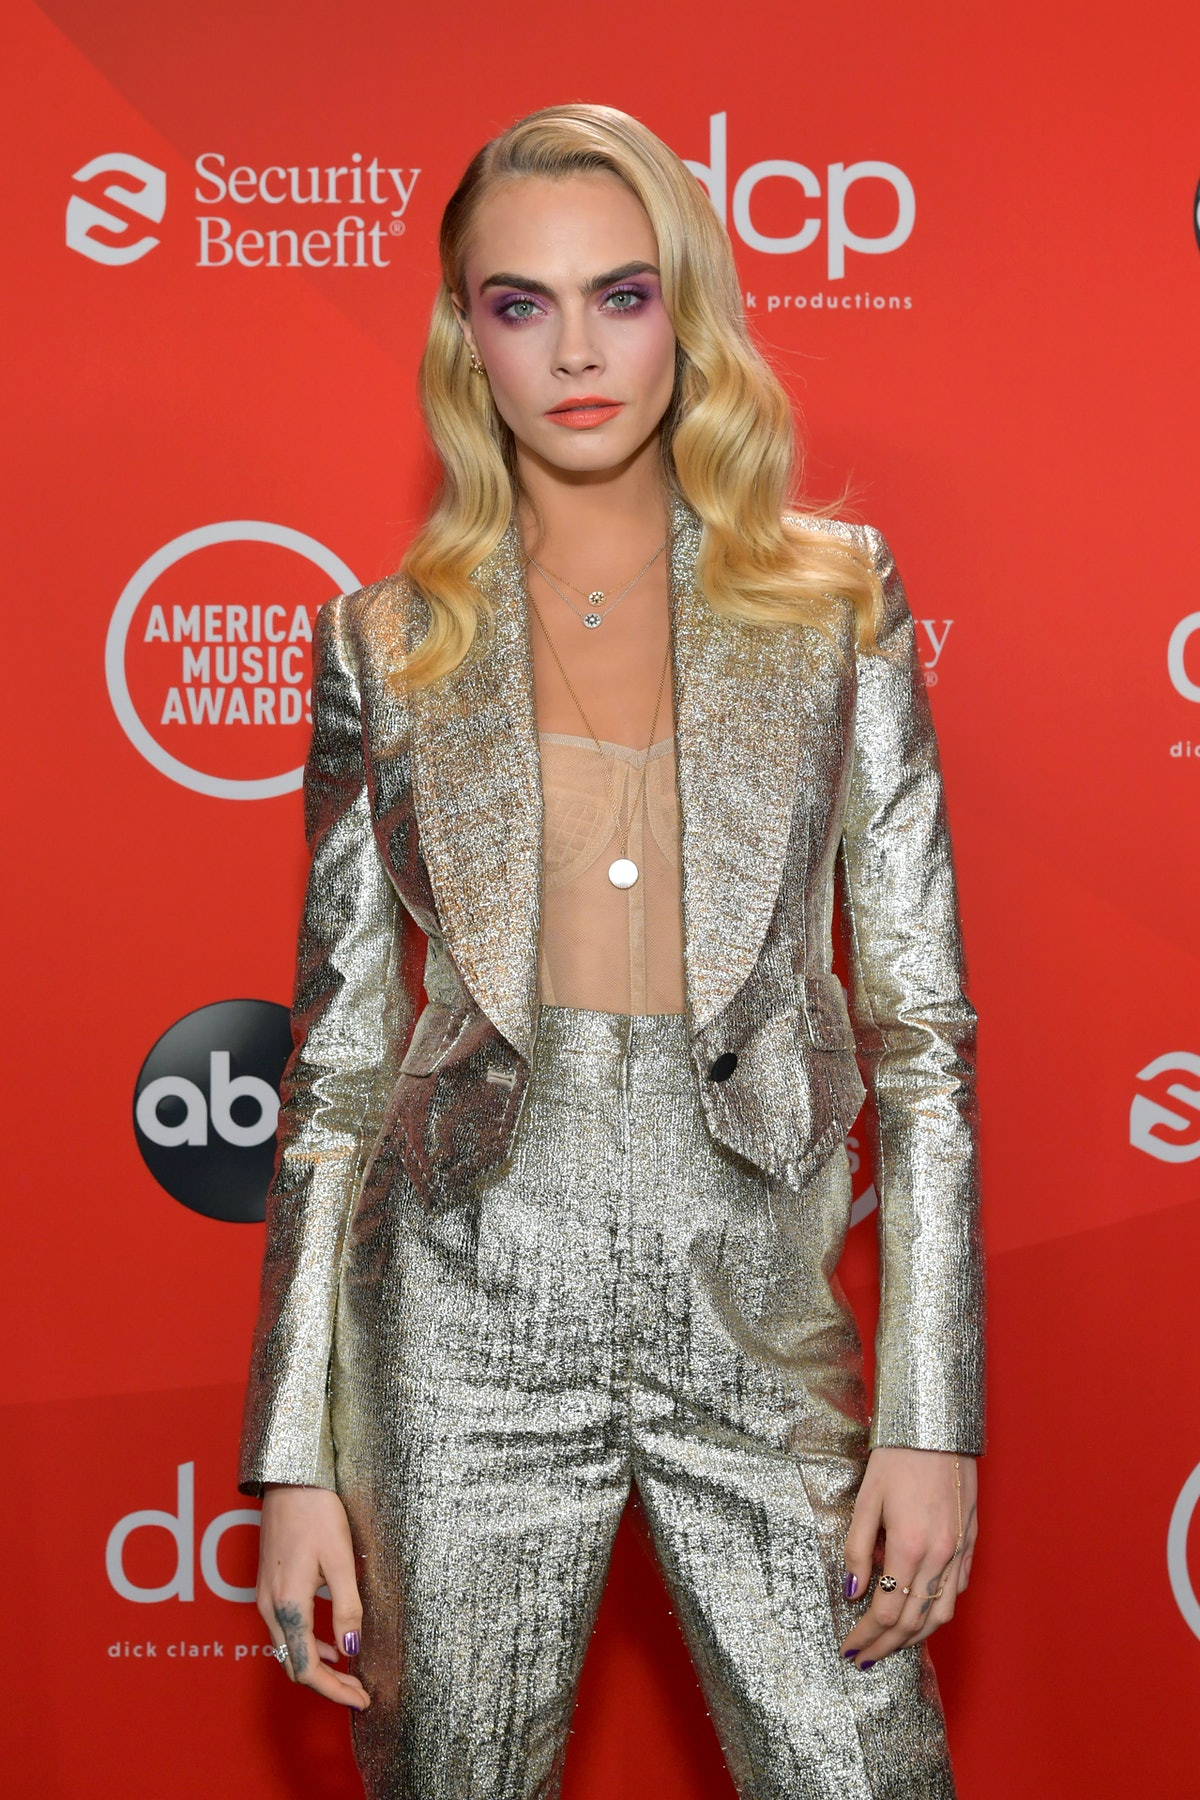 LOS ANGELES, CALIFORNIA - NOVEMBER 22: In this image released on November 22, Cara Delevingne attend...